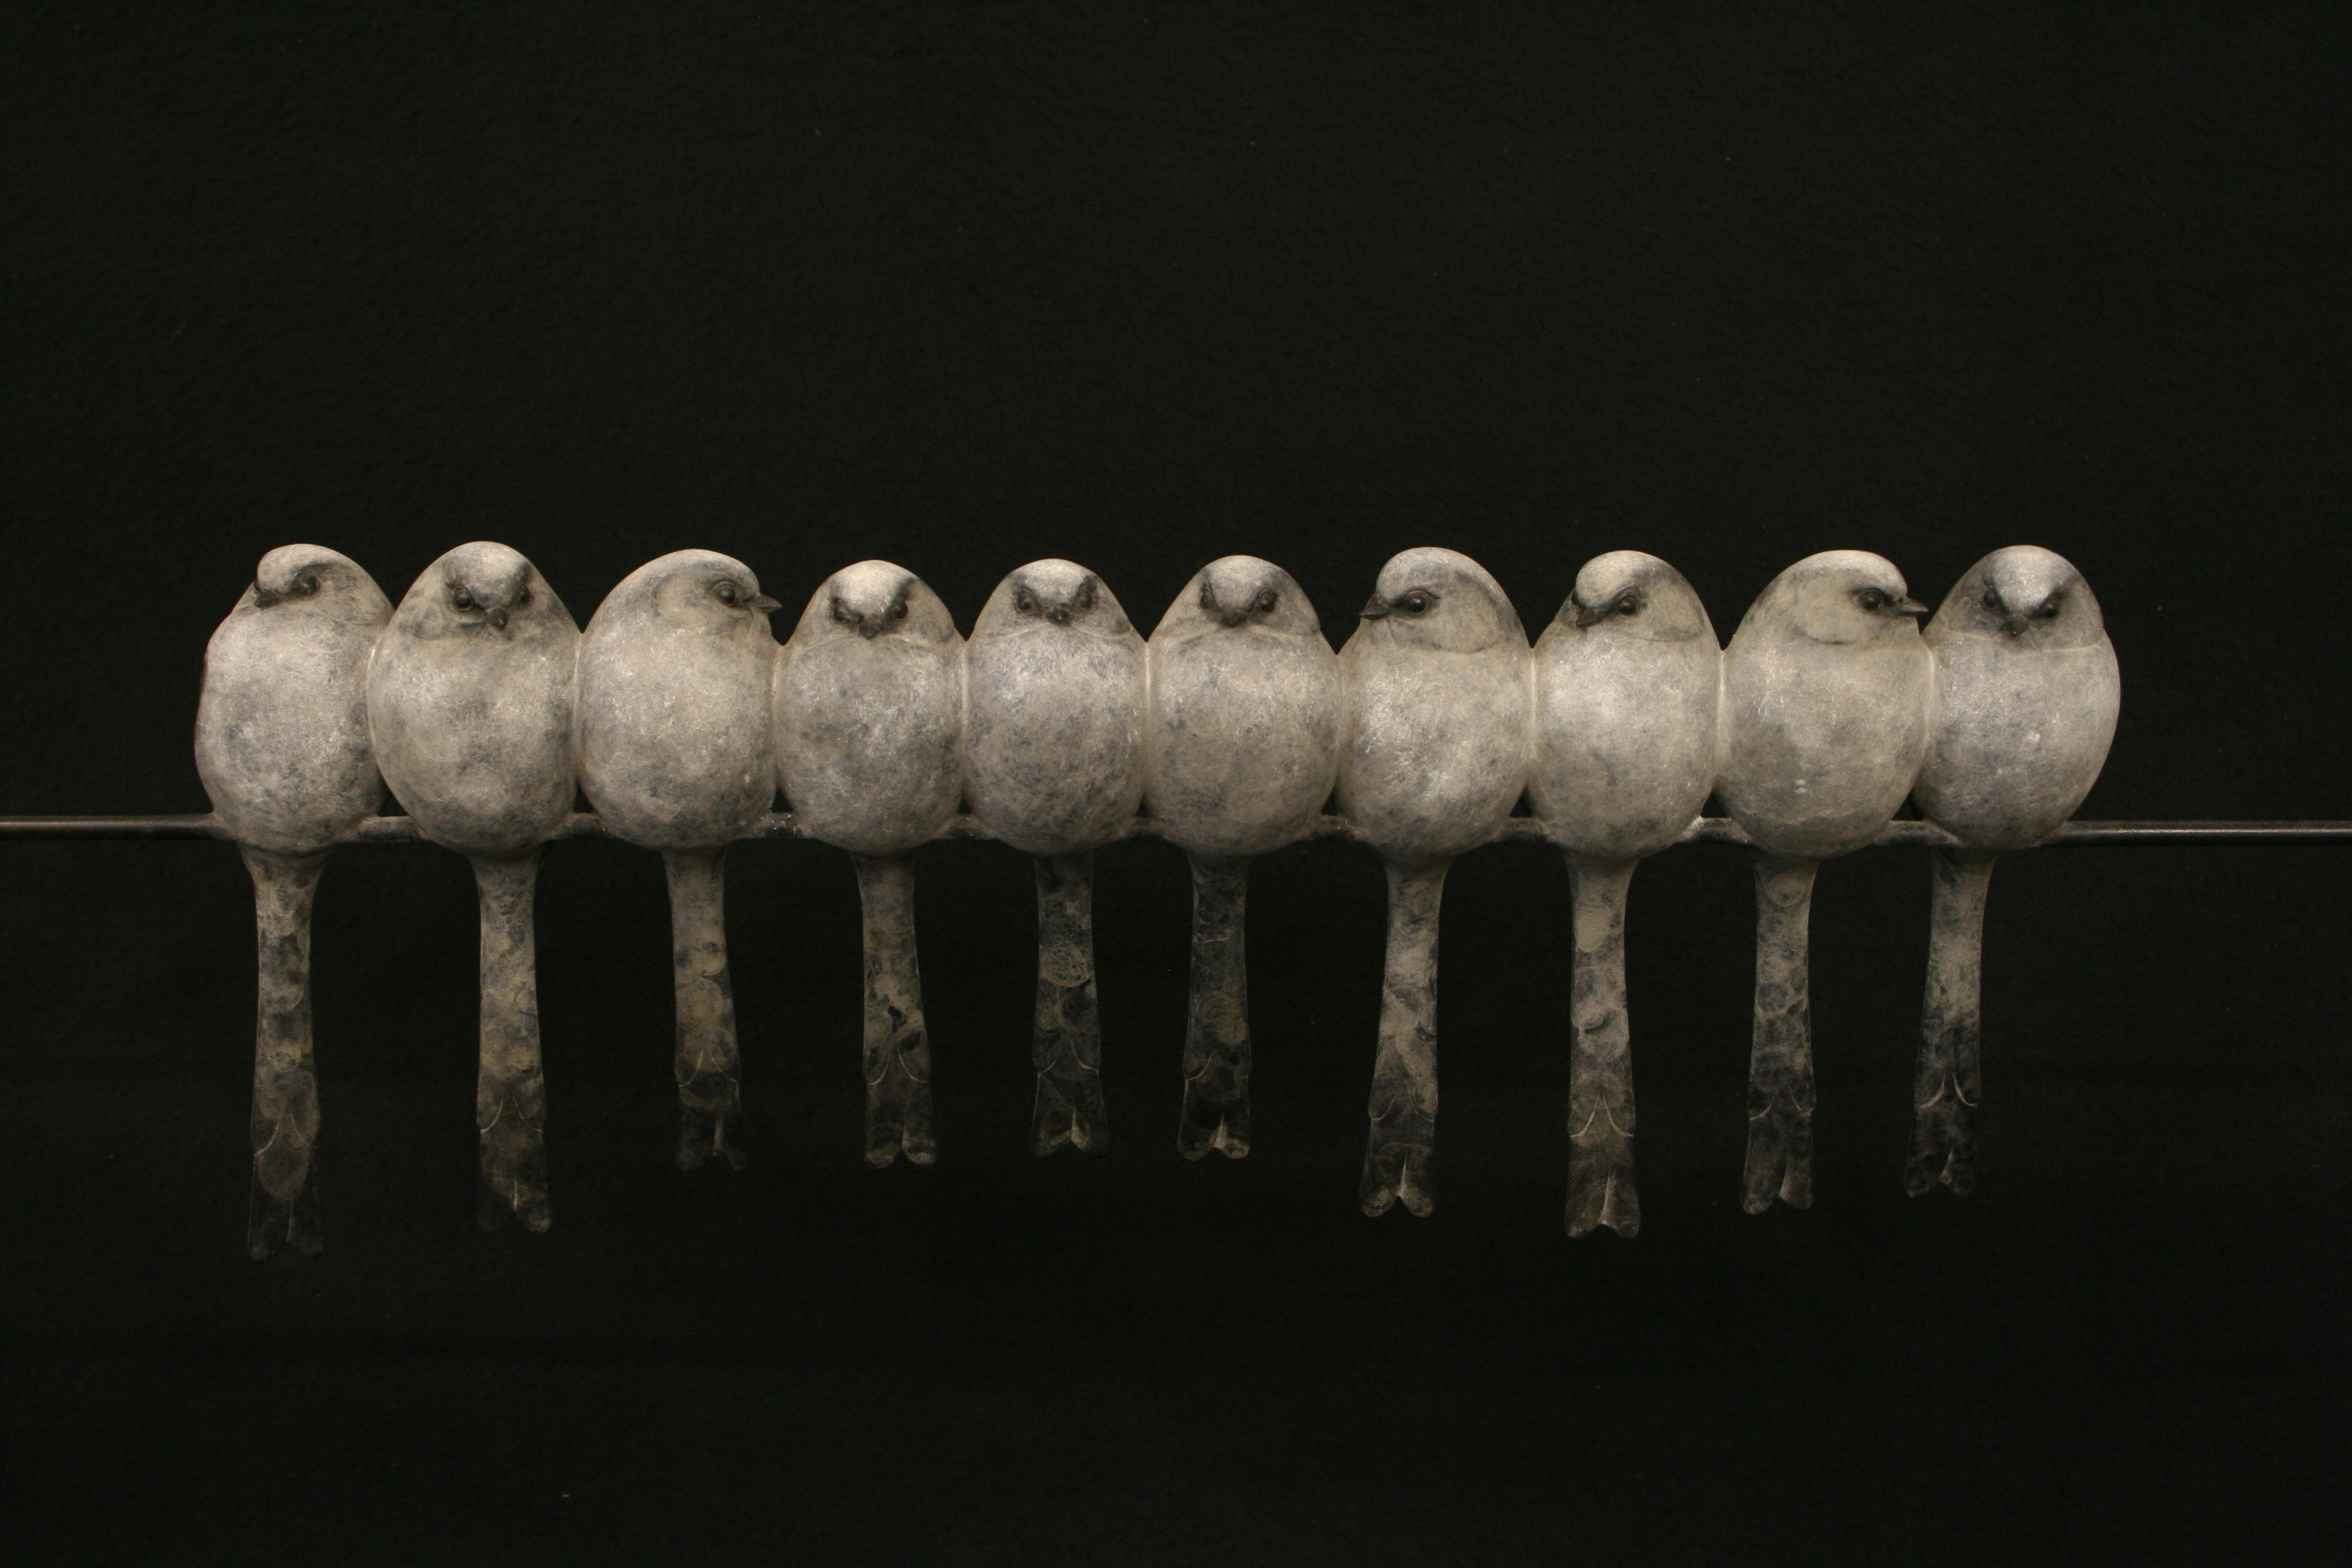 10 Long Tailed Tits